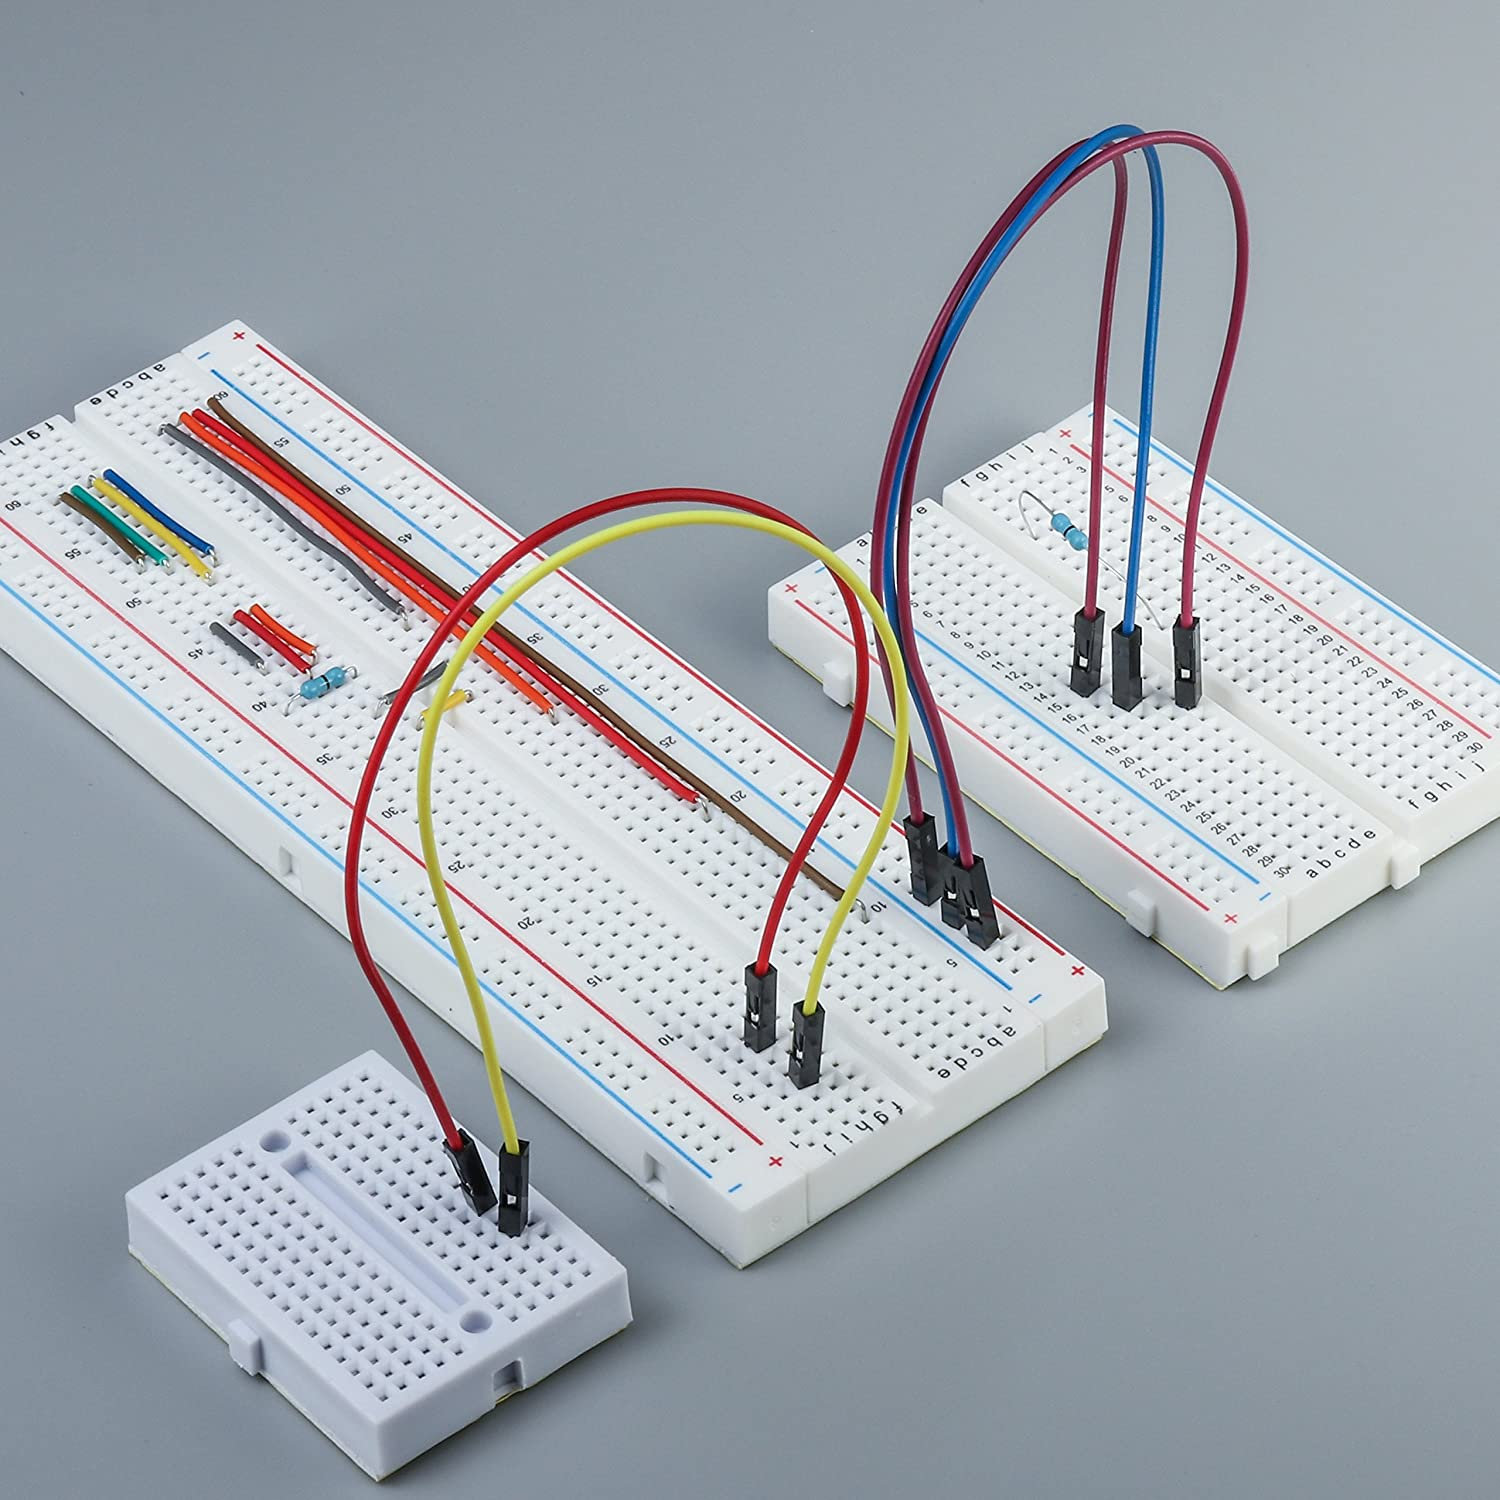 Deyue Solderless Prototype Breadboard 1x830 Tie In Breadboards Provide A Way Of Creating Circuit Without Point 2x400 Points Boards 6x170 Mini Modular